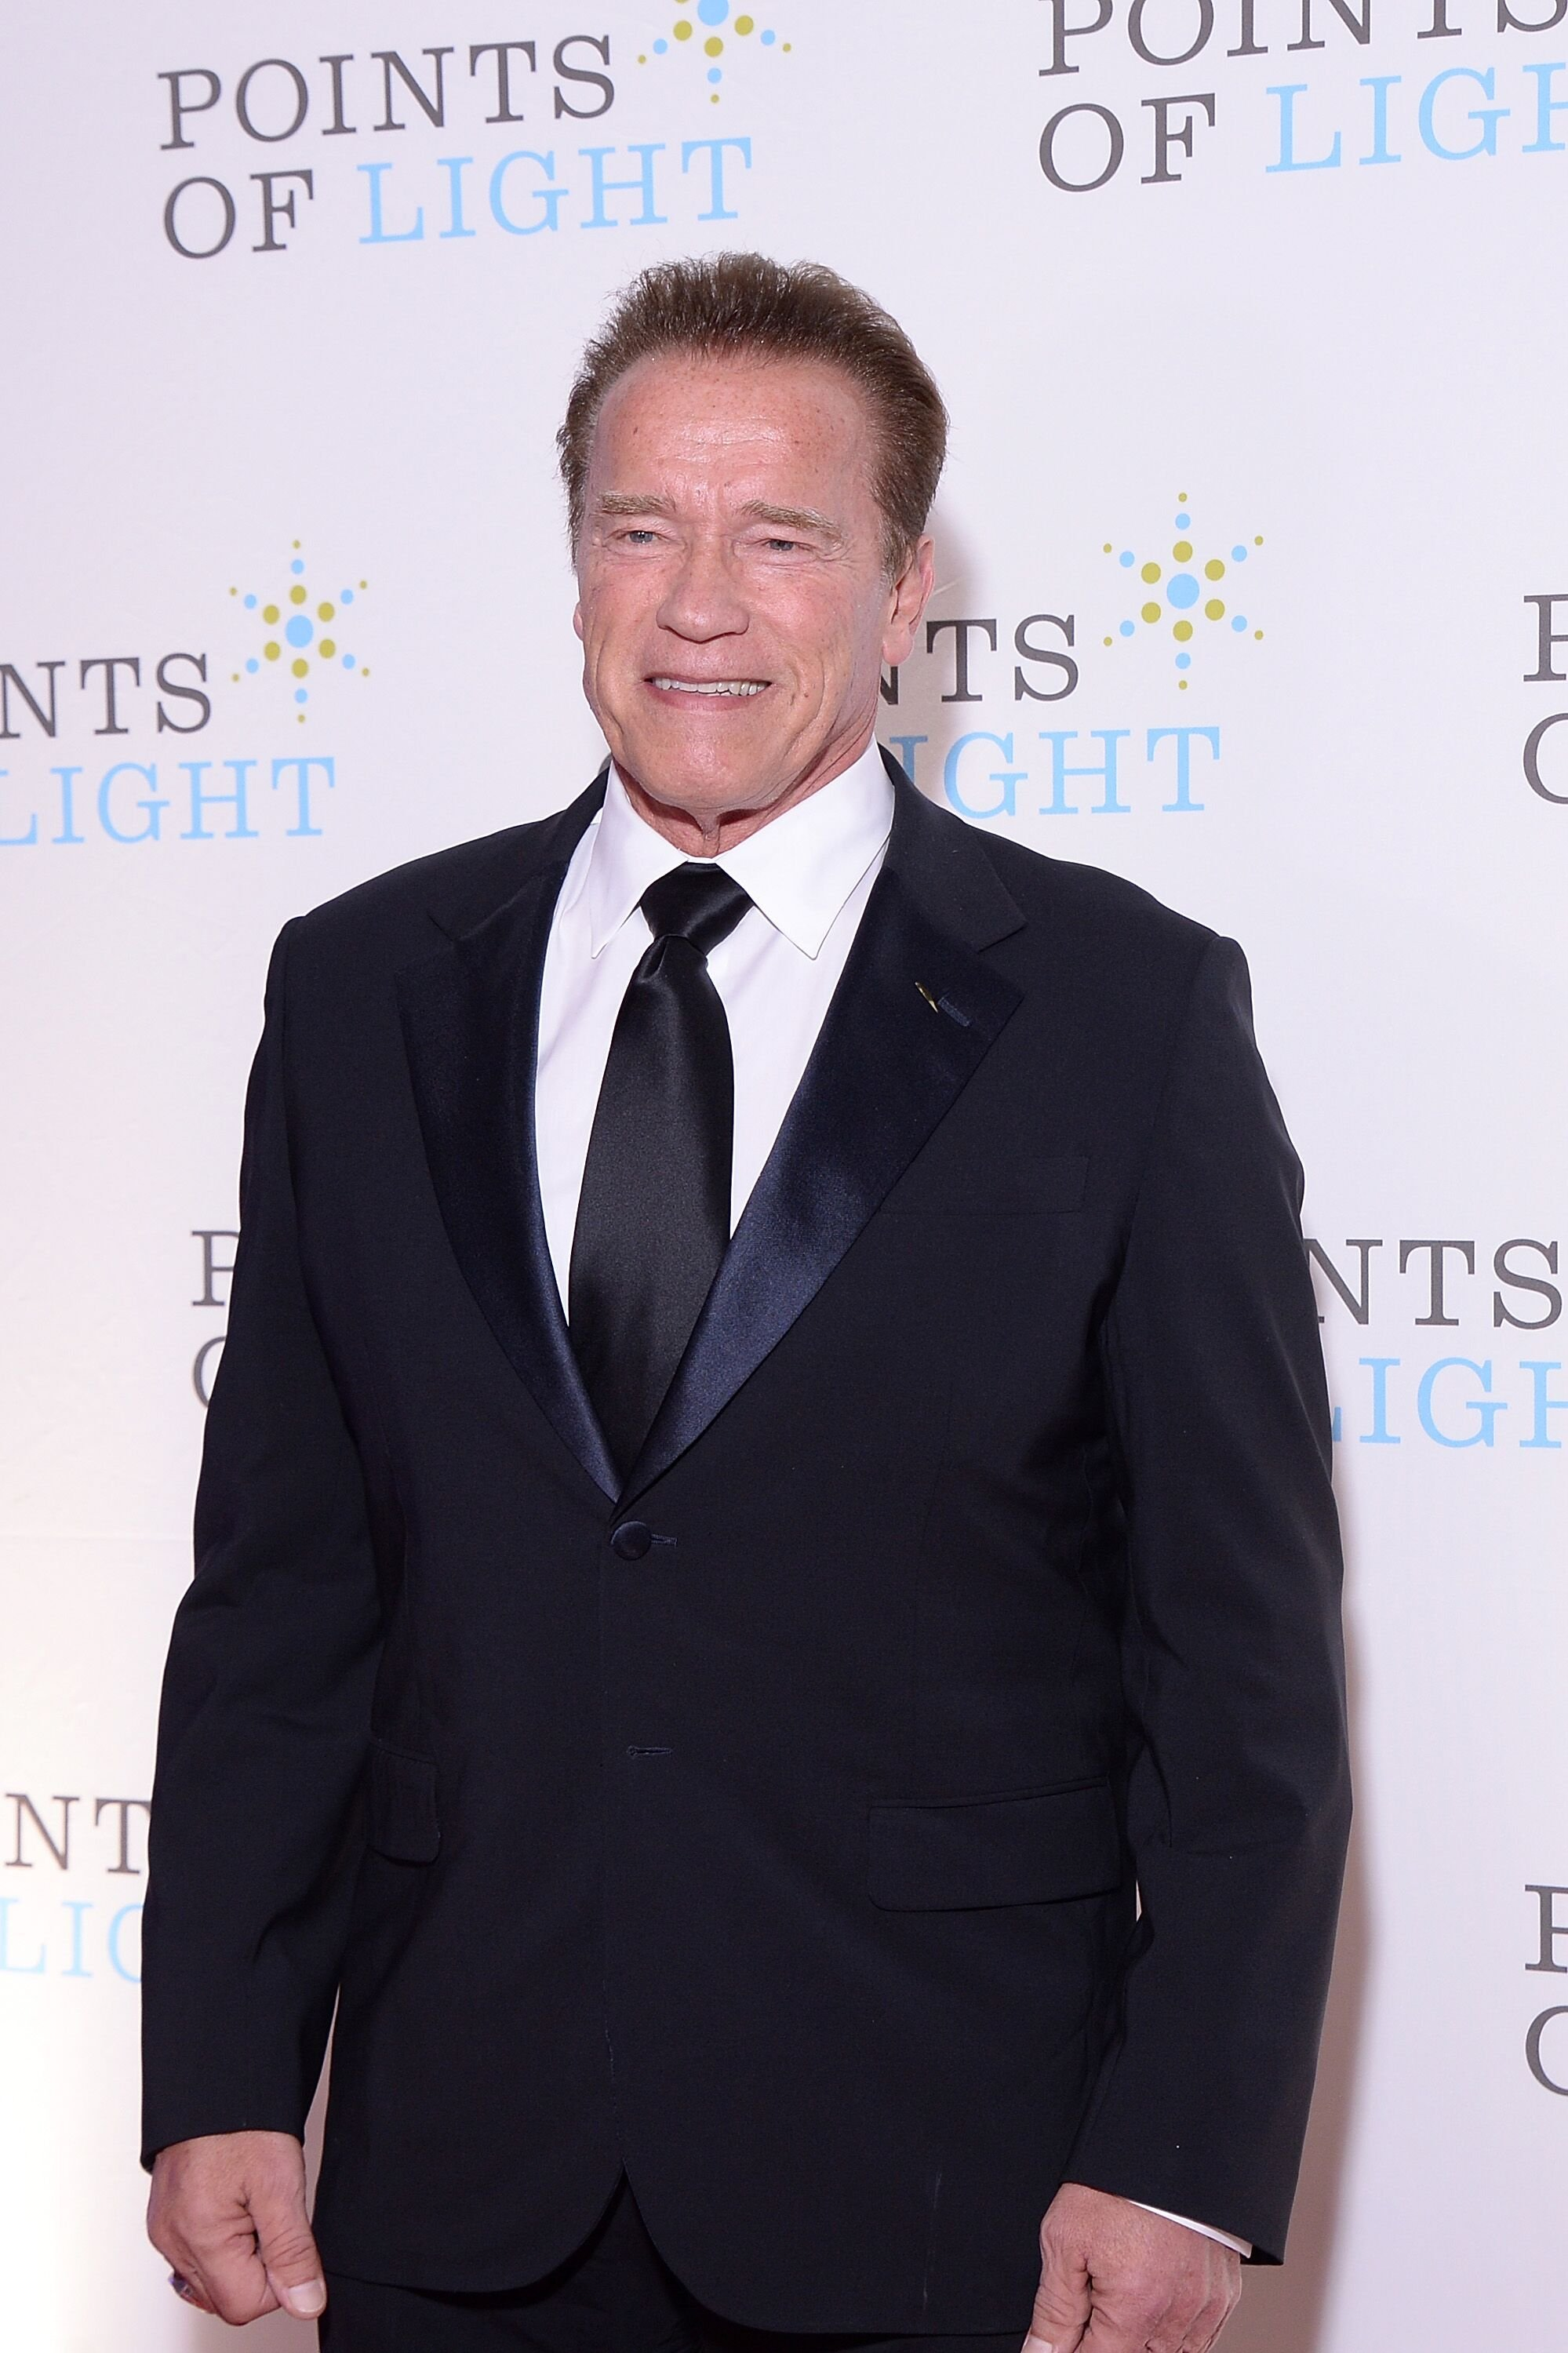 Arnold Schwarzenegger at the Points of Light event. | Source: Getty Images